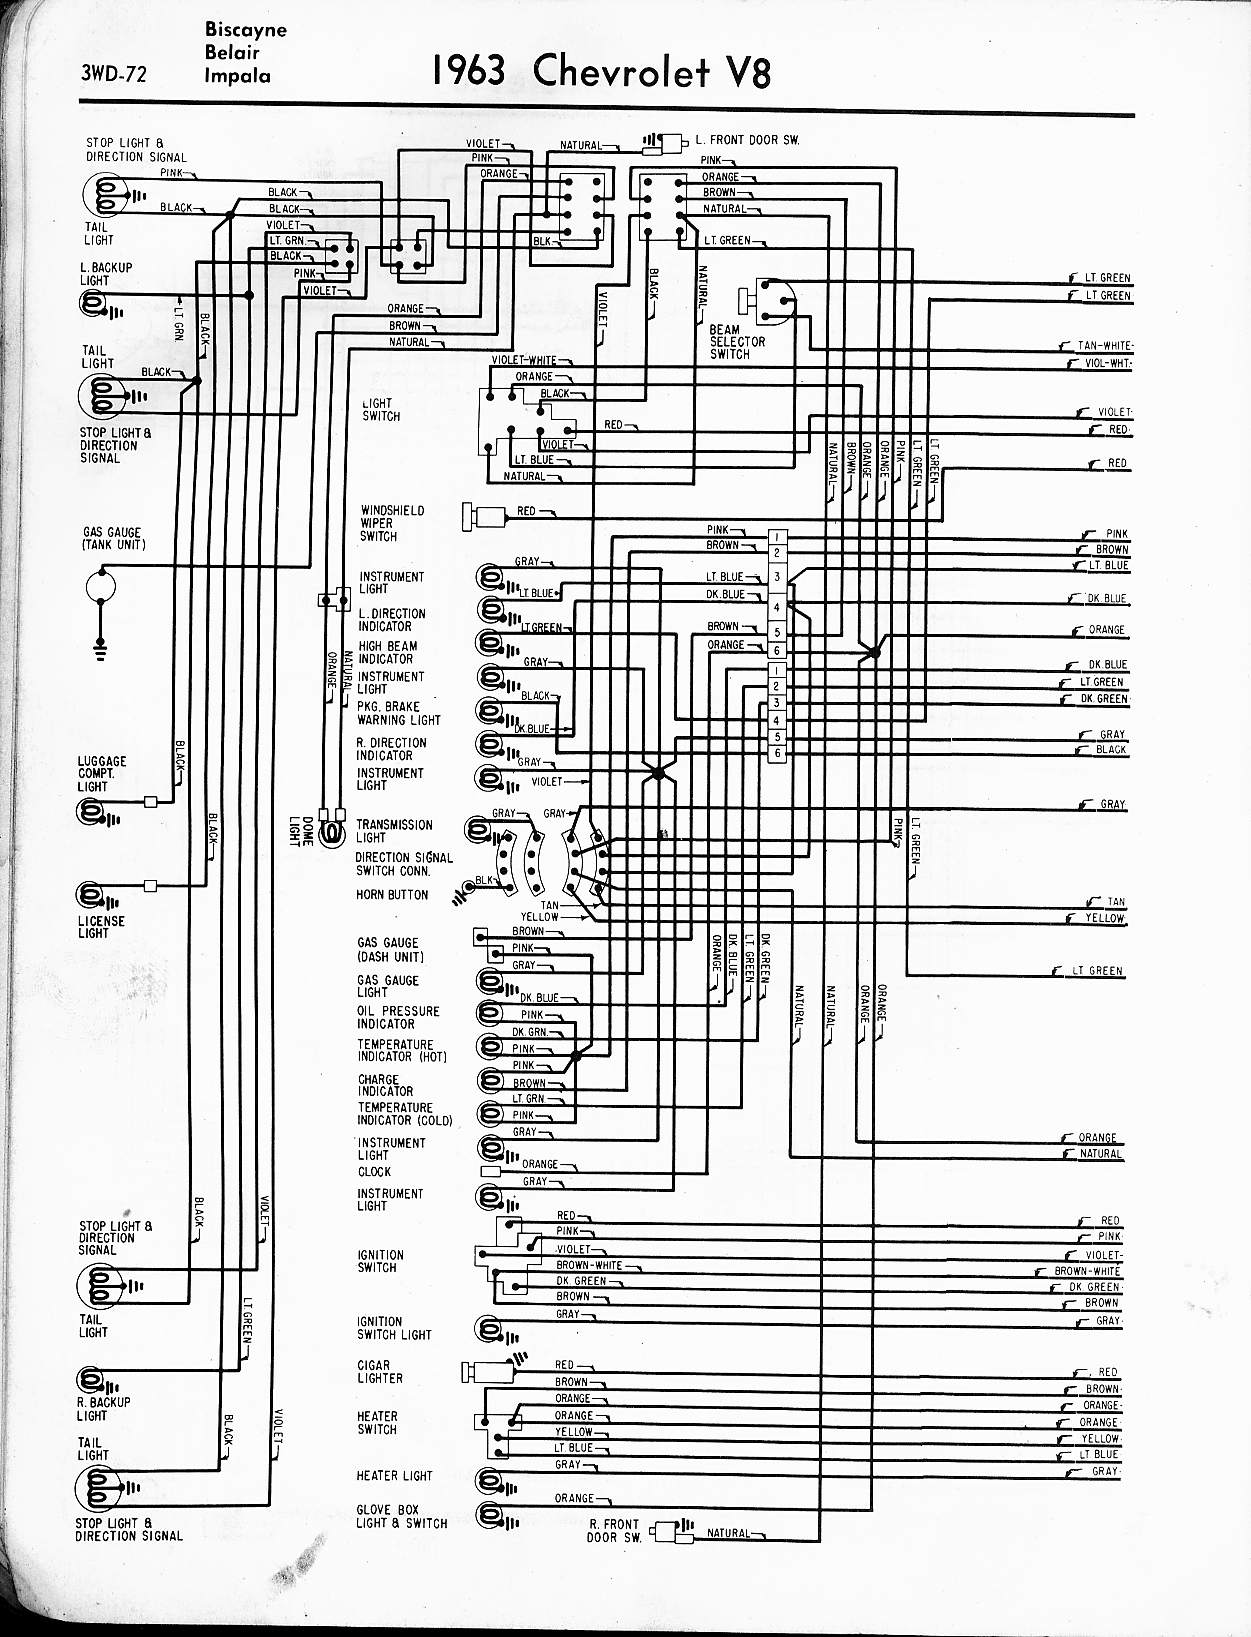 1963 chevy impala wiring diagram